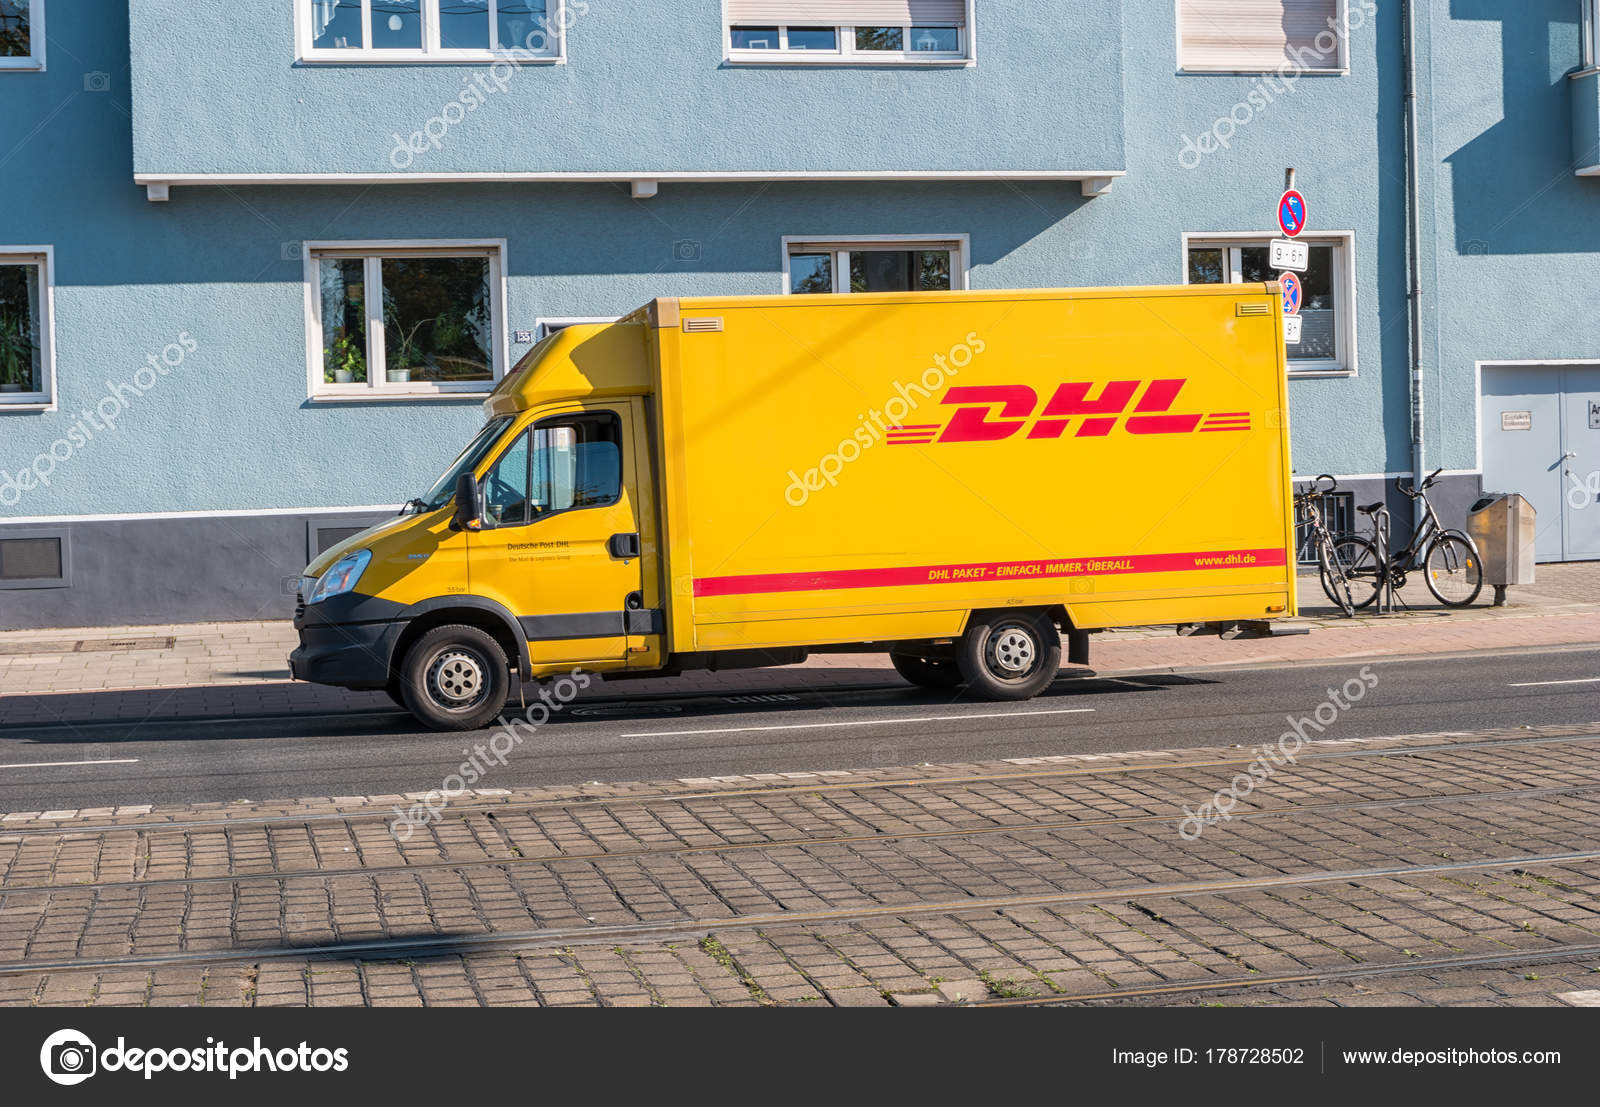 gelbe dhl paket lieferwagen auf der stra e geparkt redaktionelles stockfoto rclassenlayouts. Black Bedroom Furniture Sets. Home Design Ideas